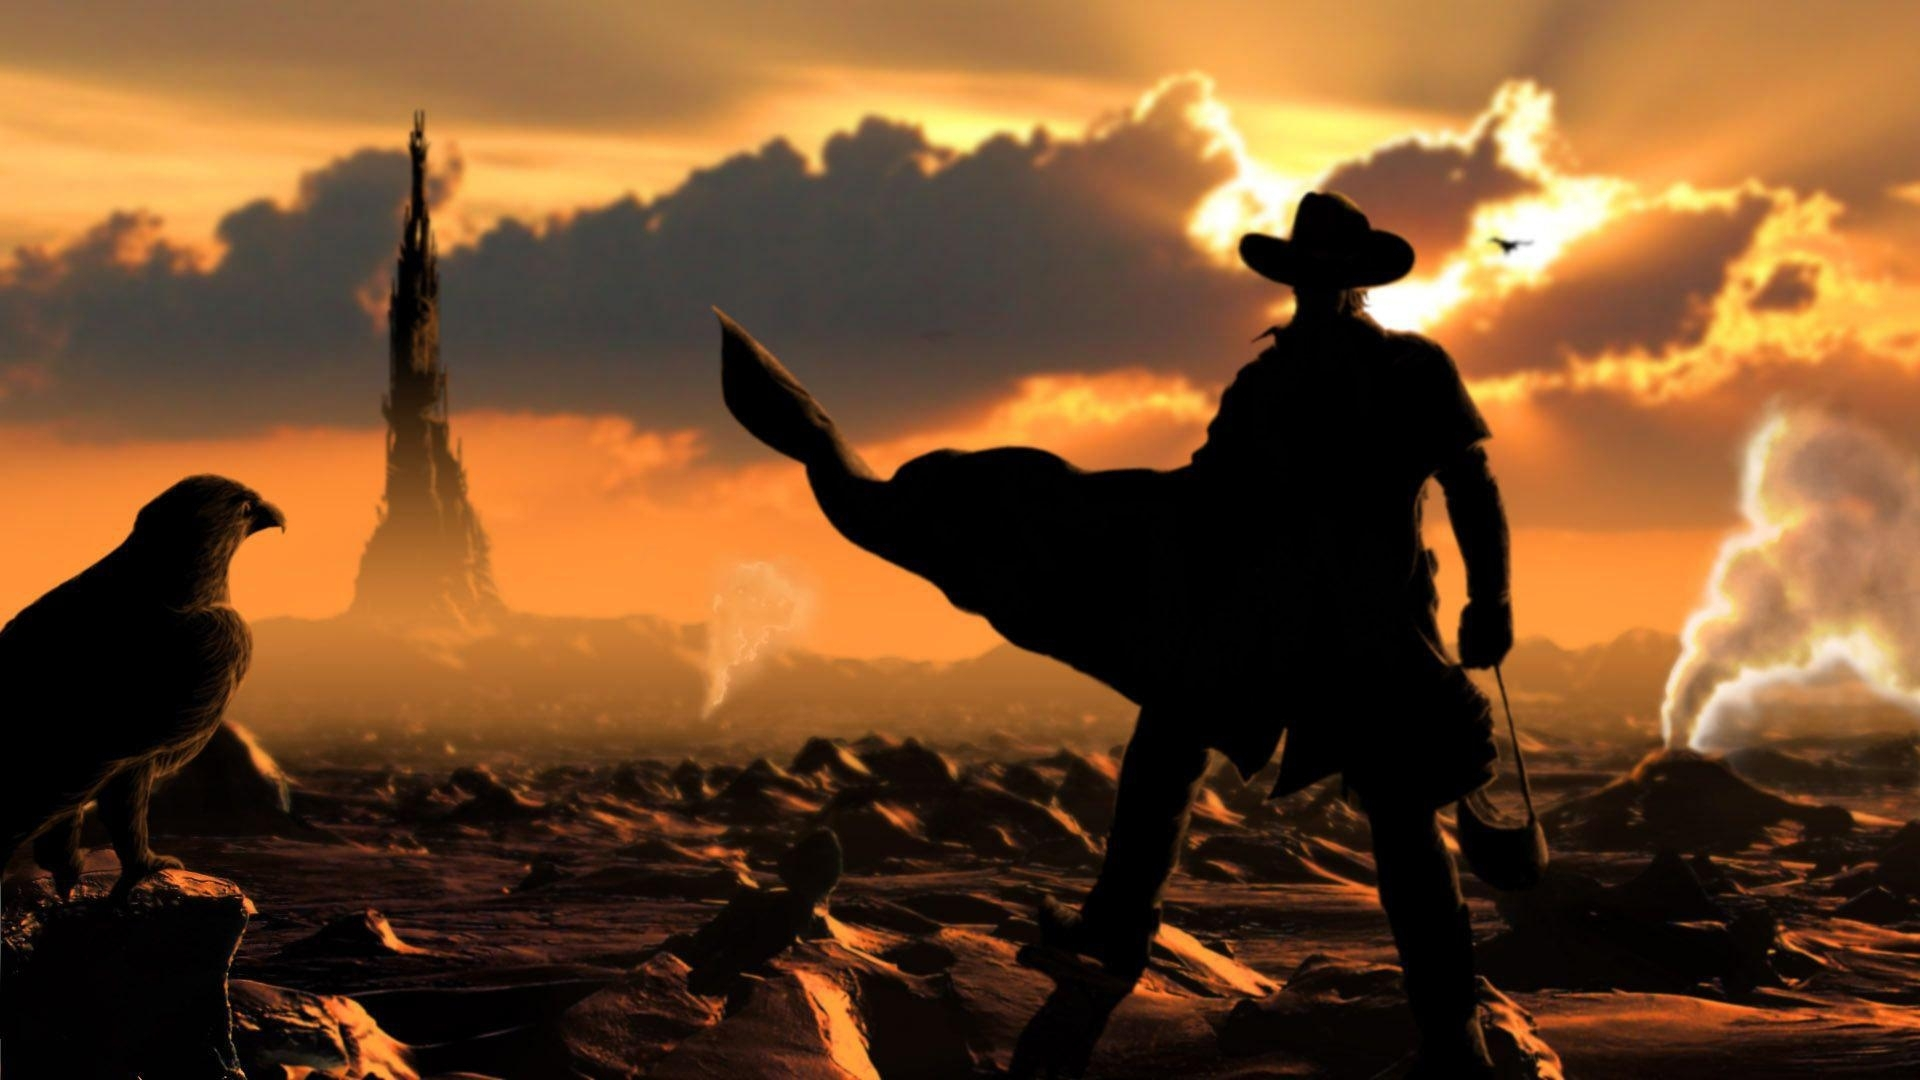 the dark tower wallpapers group (70+)